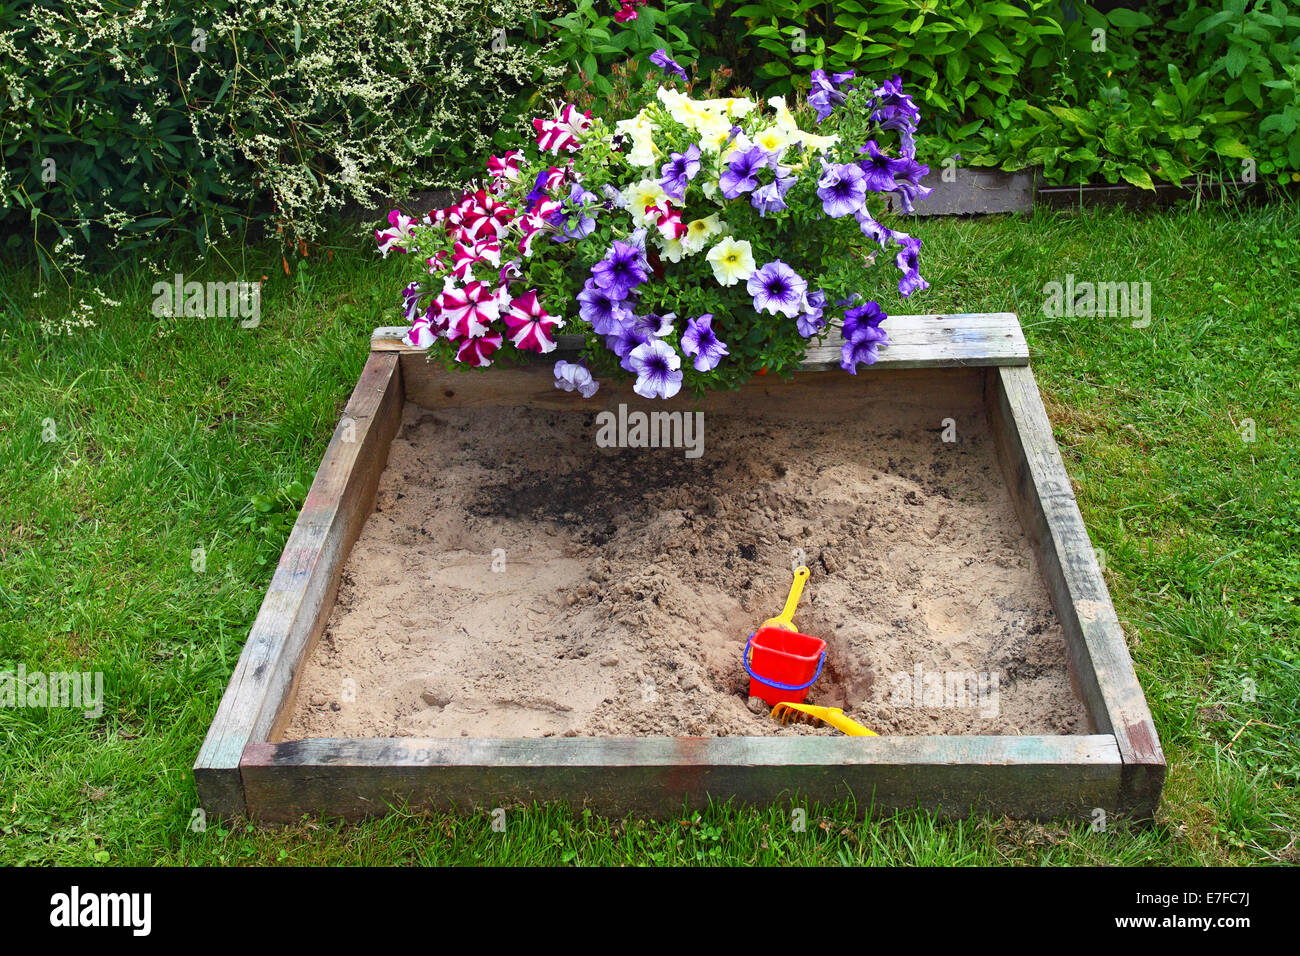 Sandbox in garden with flowers above it - Stock Image